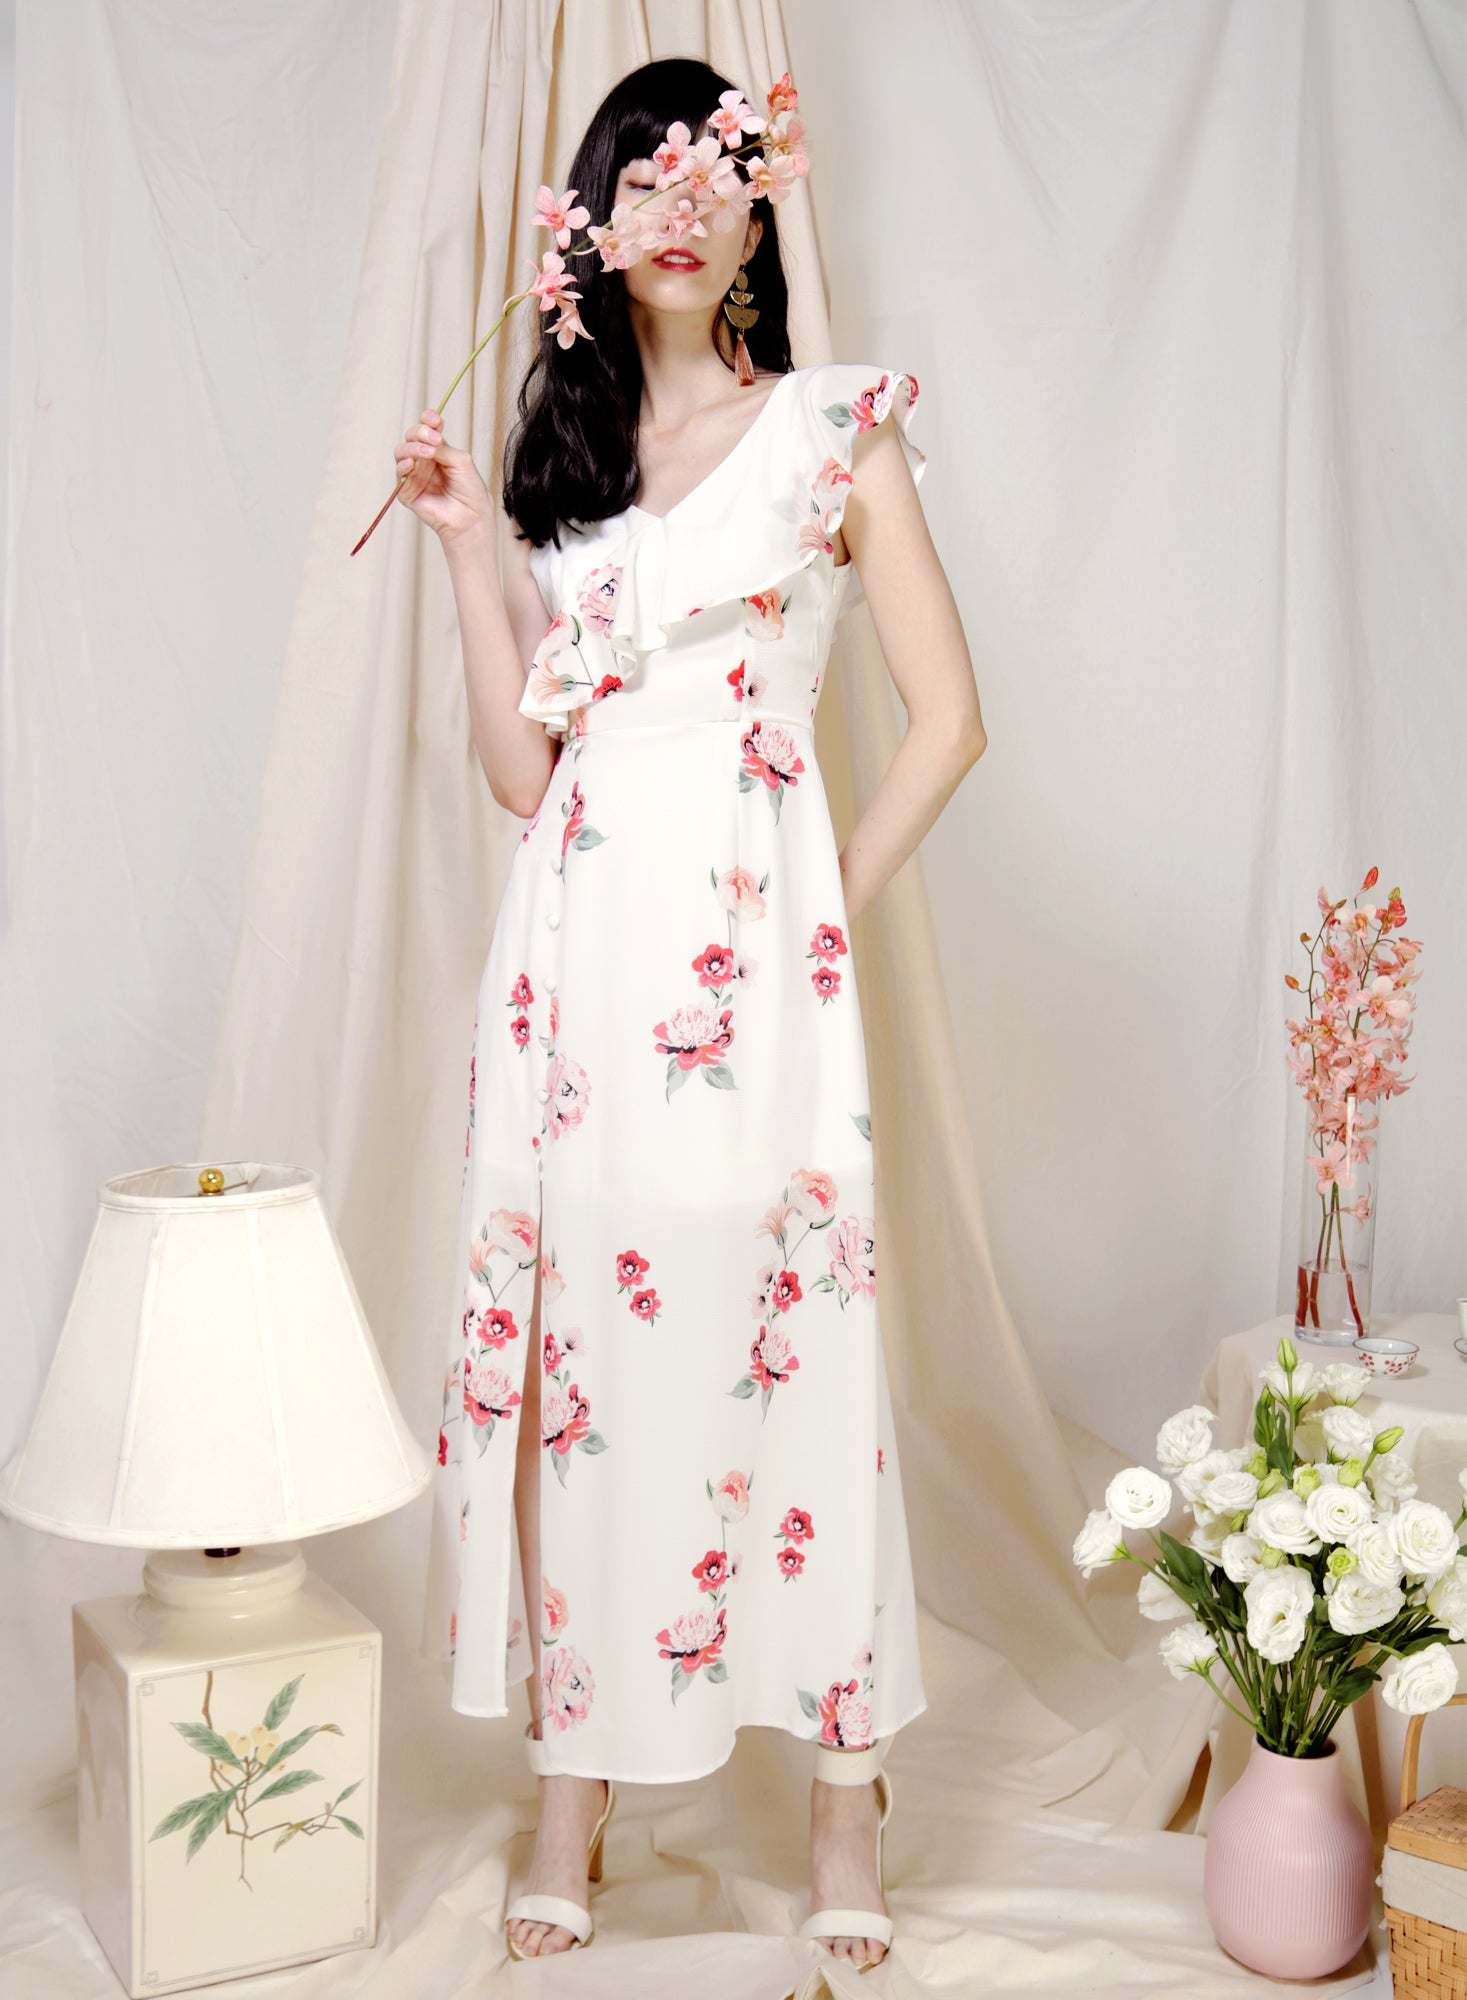 Poetry Asymmetric Ruffle Floral Dress (White) at $ 45.00 only sold at And Well Dressed Online Fashion Store Singapore